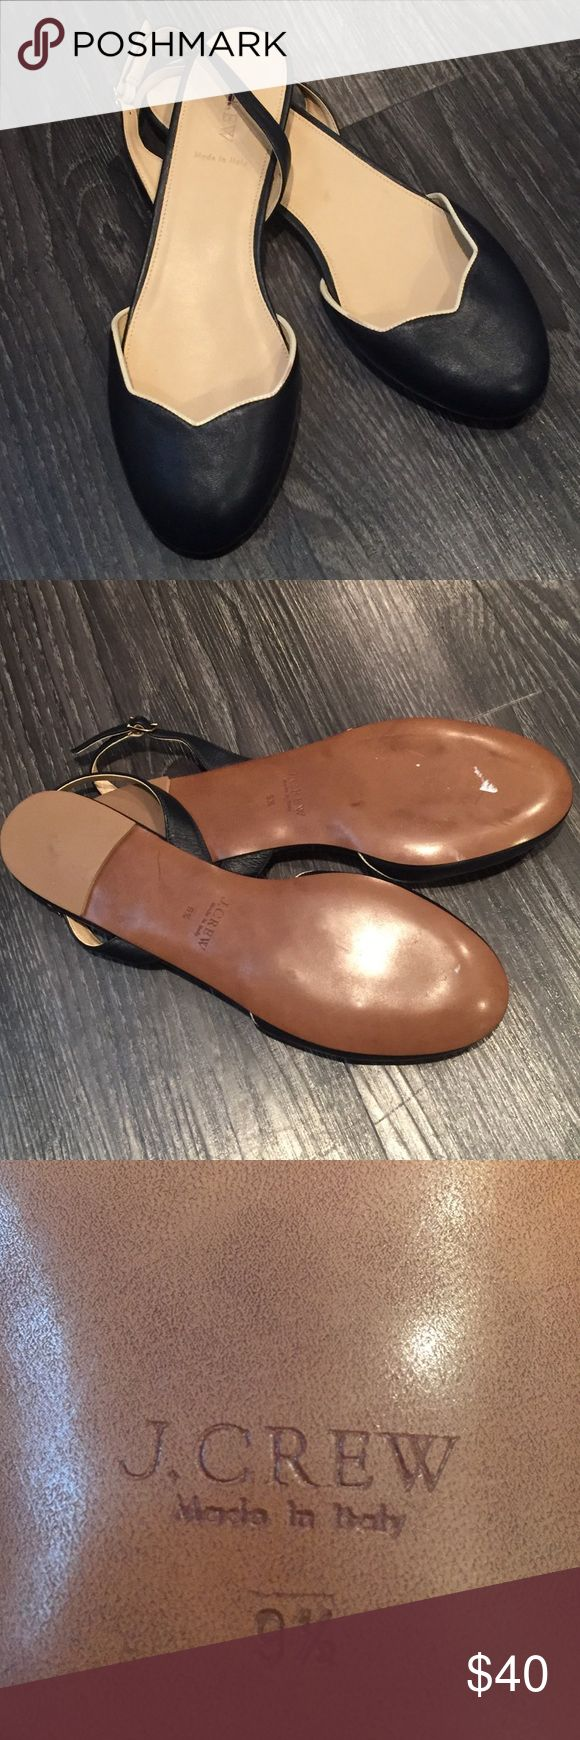 JCrew Navy Flats 9.5 Navy blue with white trim NEW J. Crew Shoes Flats & Loafers